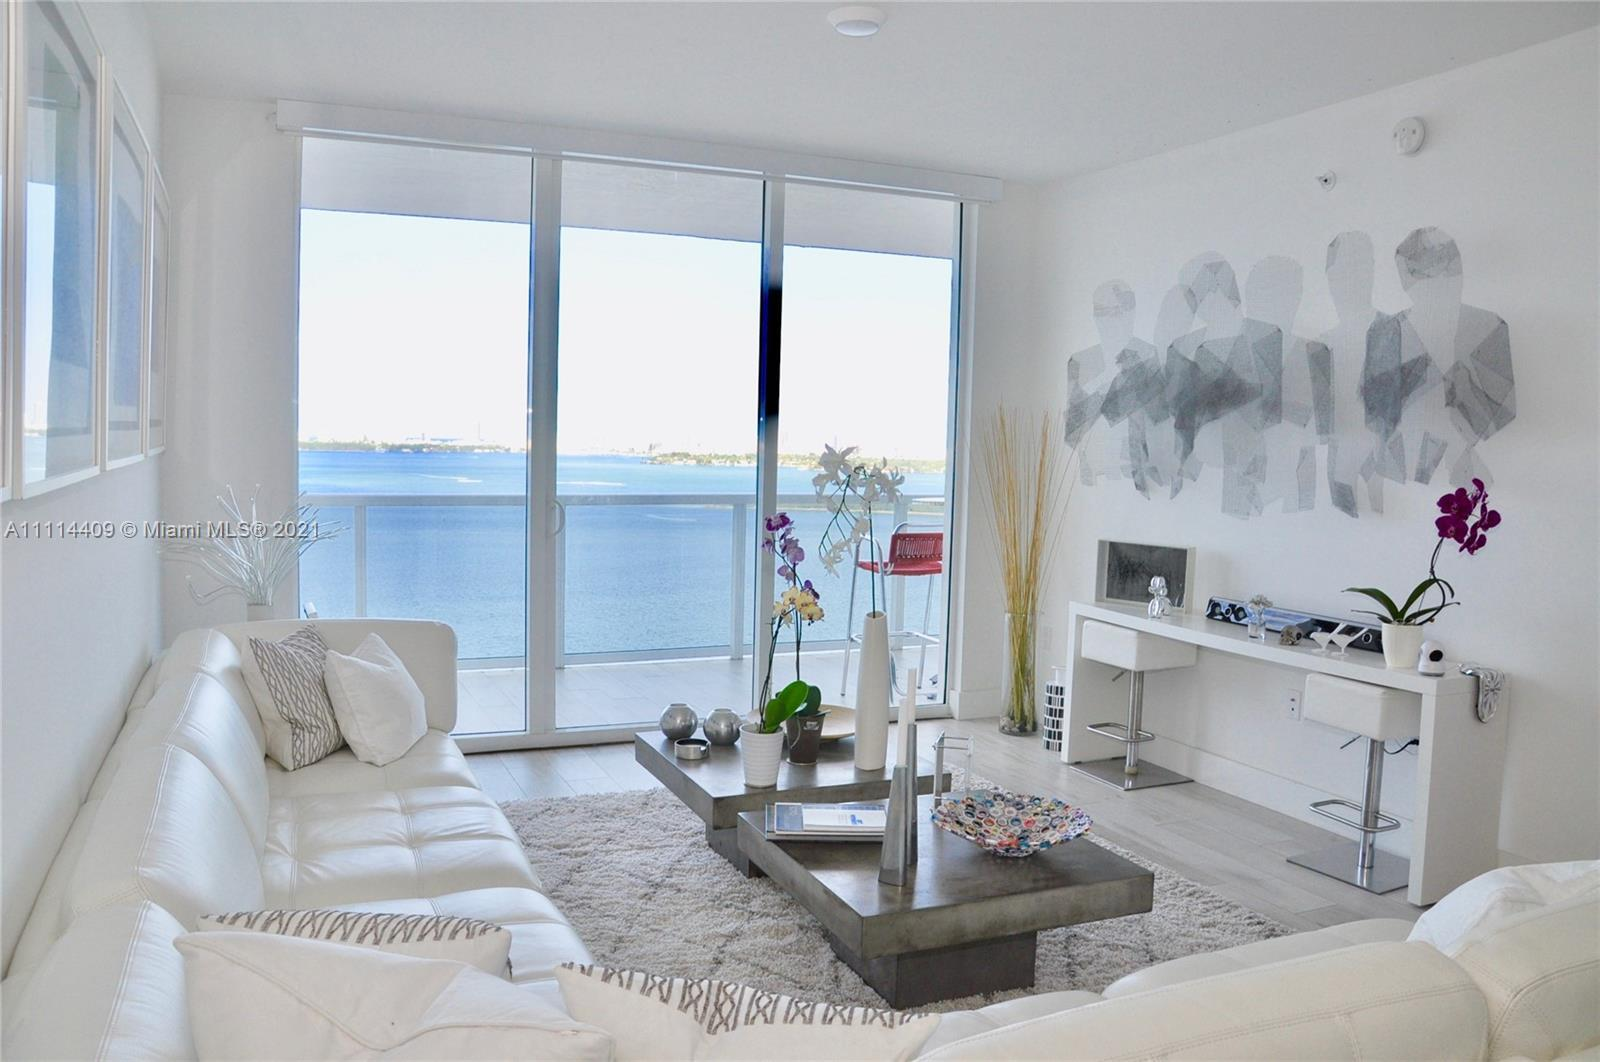 Espectacular Bay views from this professional furnished 3 bedroom/3 bathroom condo in Miami East Edg